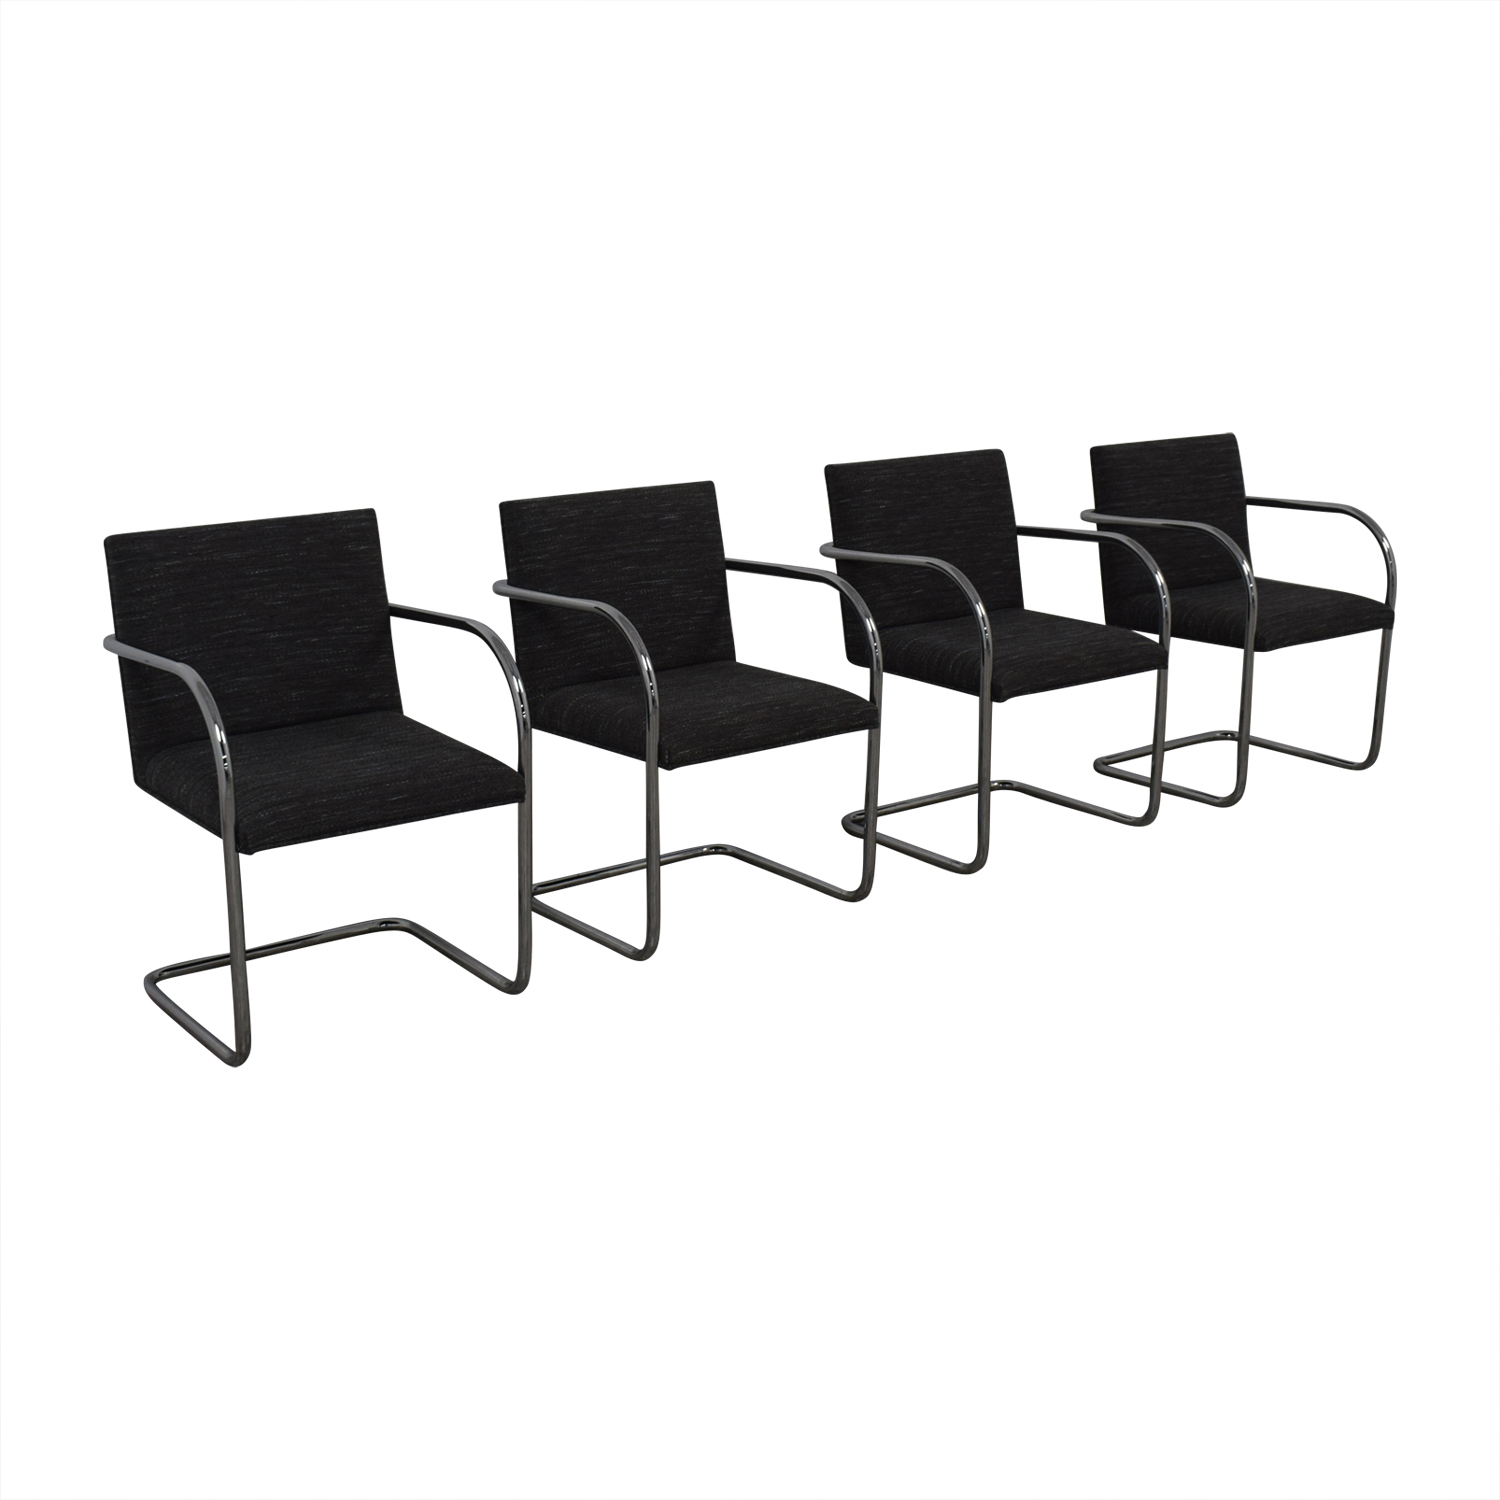 buy Chrome Upholstered Office Chairs  Chairs